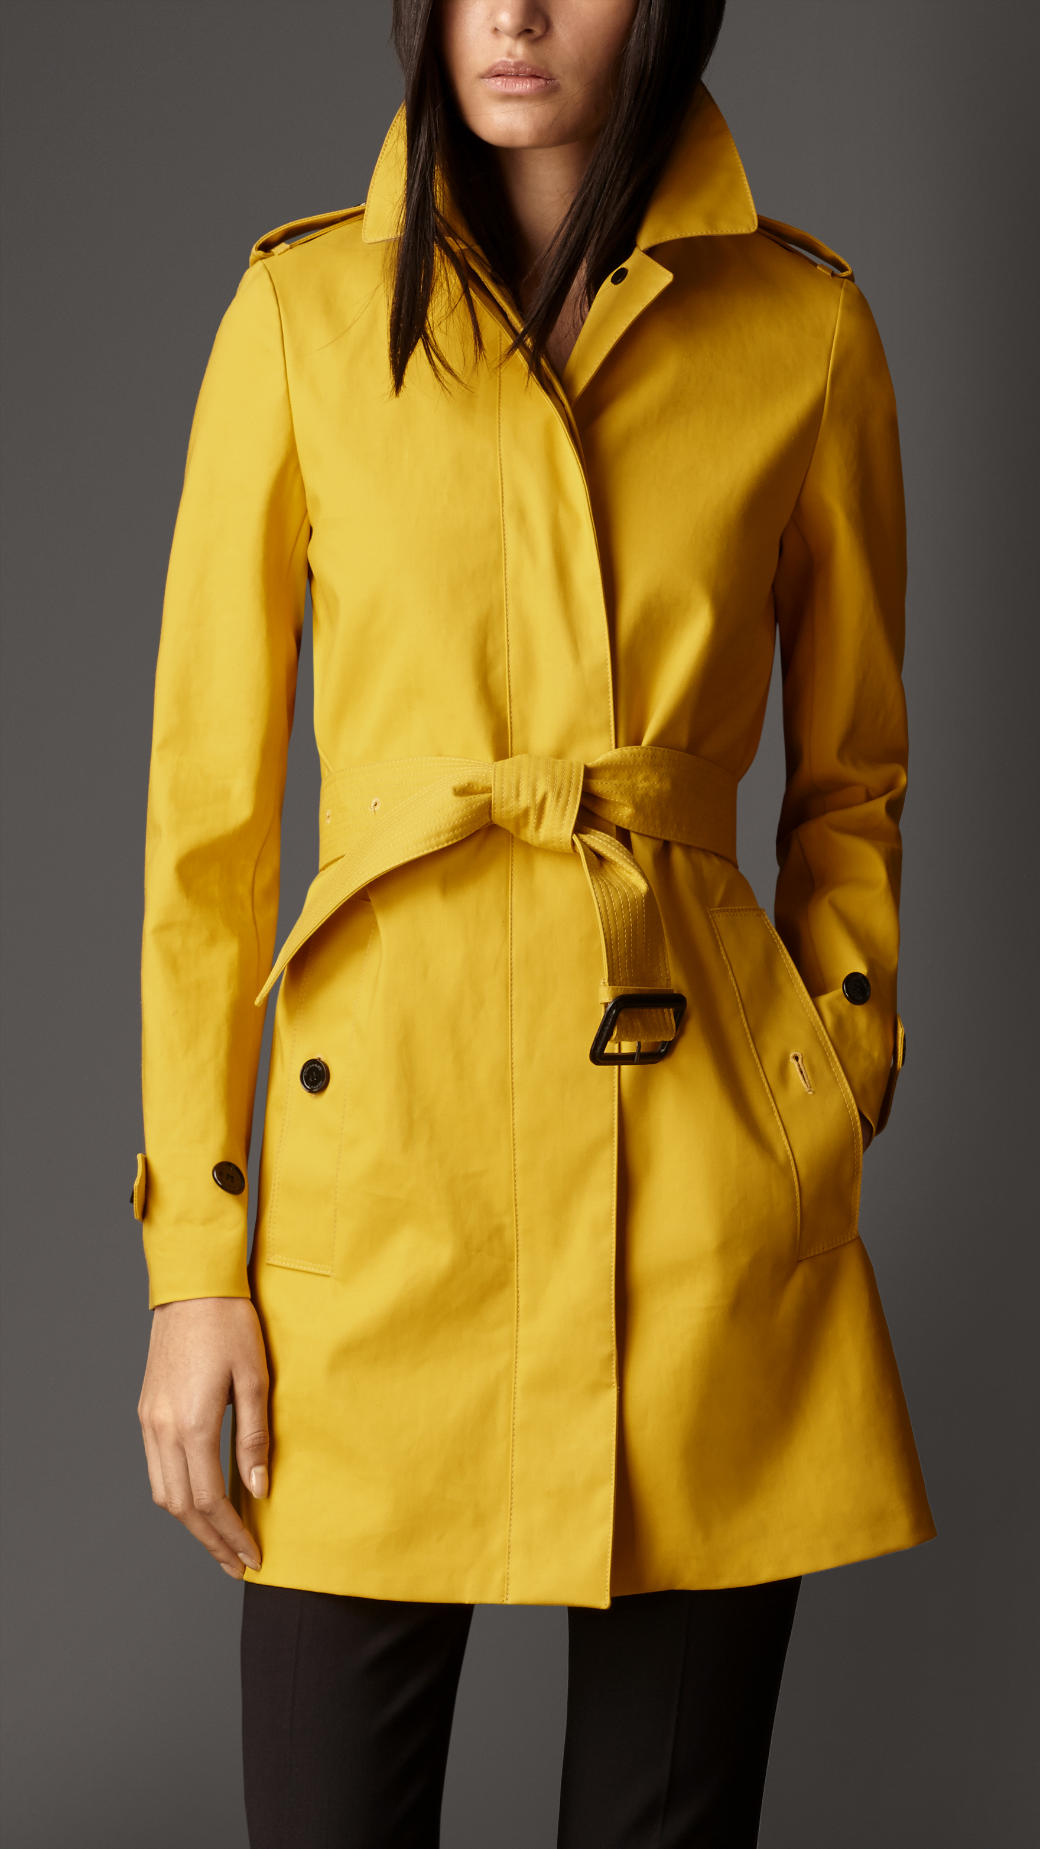 Burberry Midlength Bonded Cotton Trench Coat in Yellow